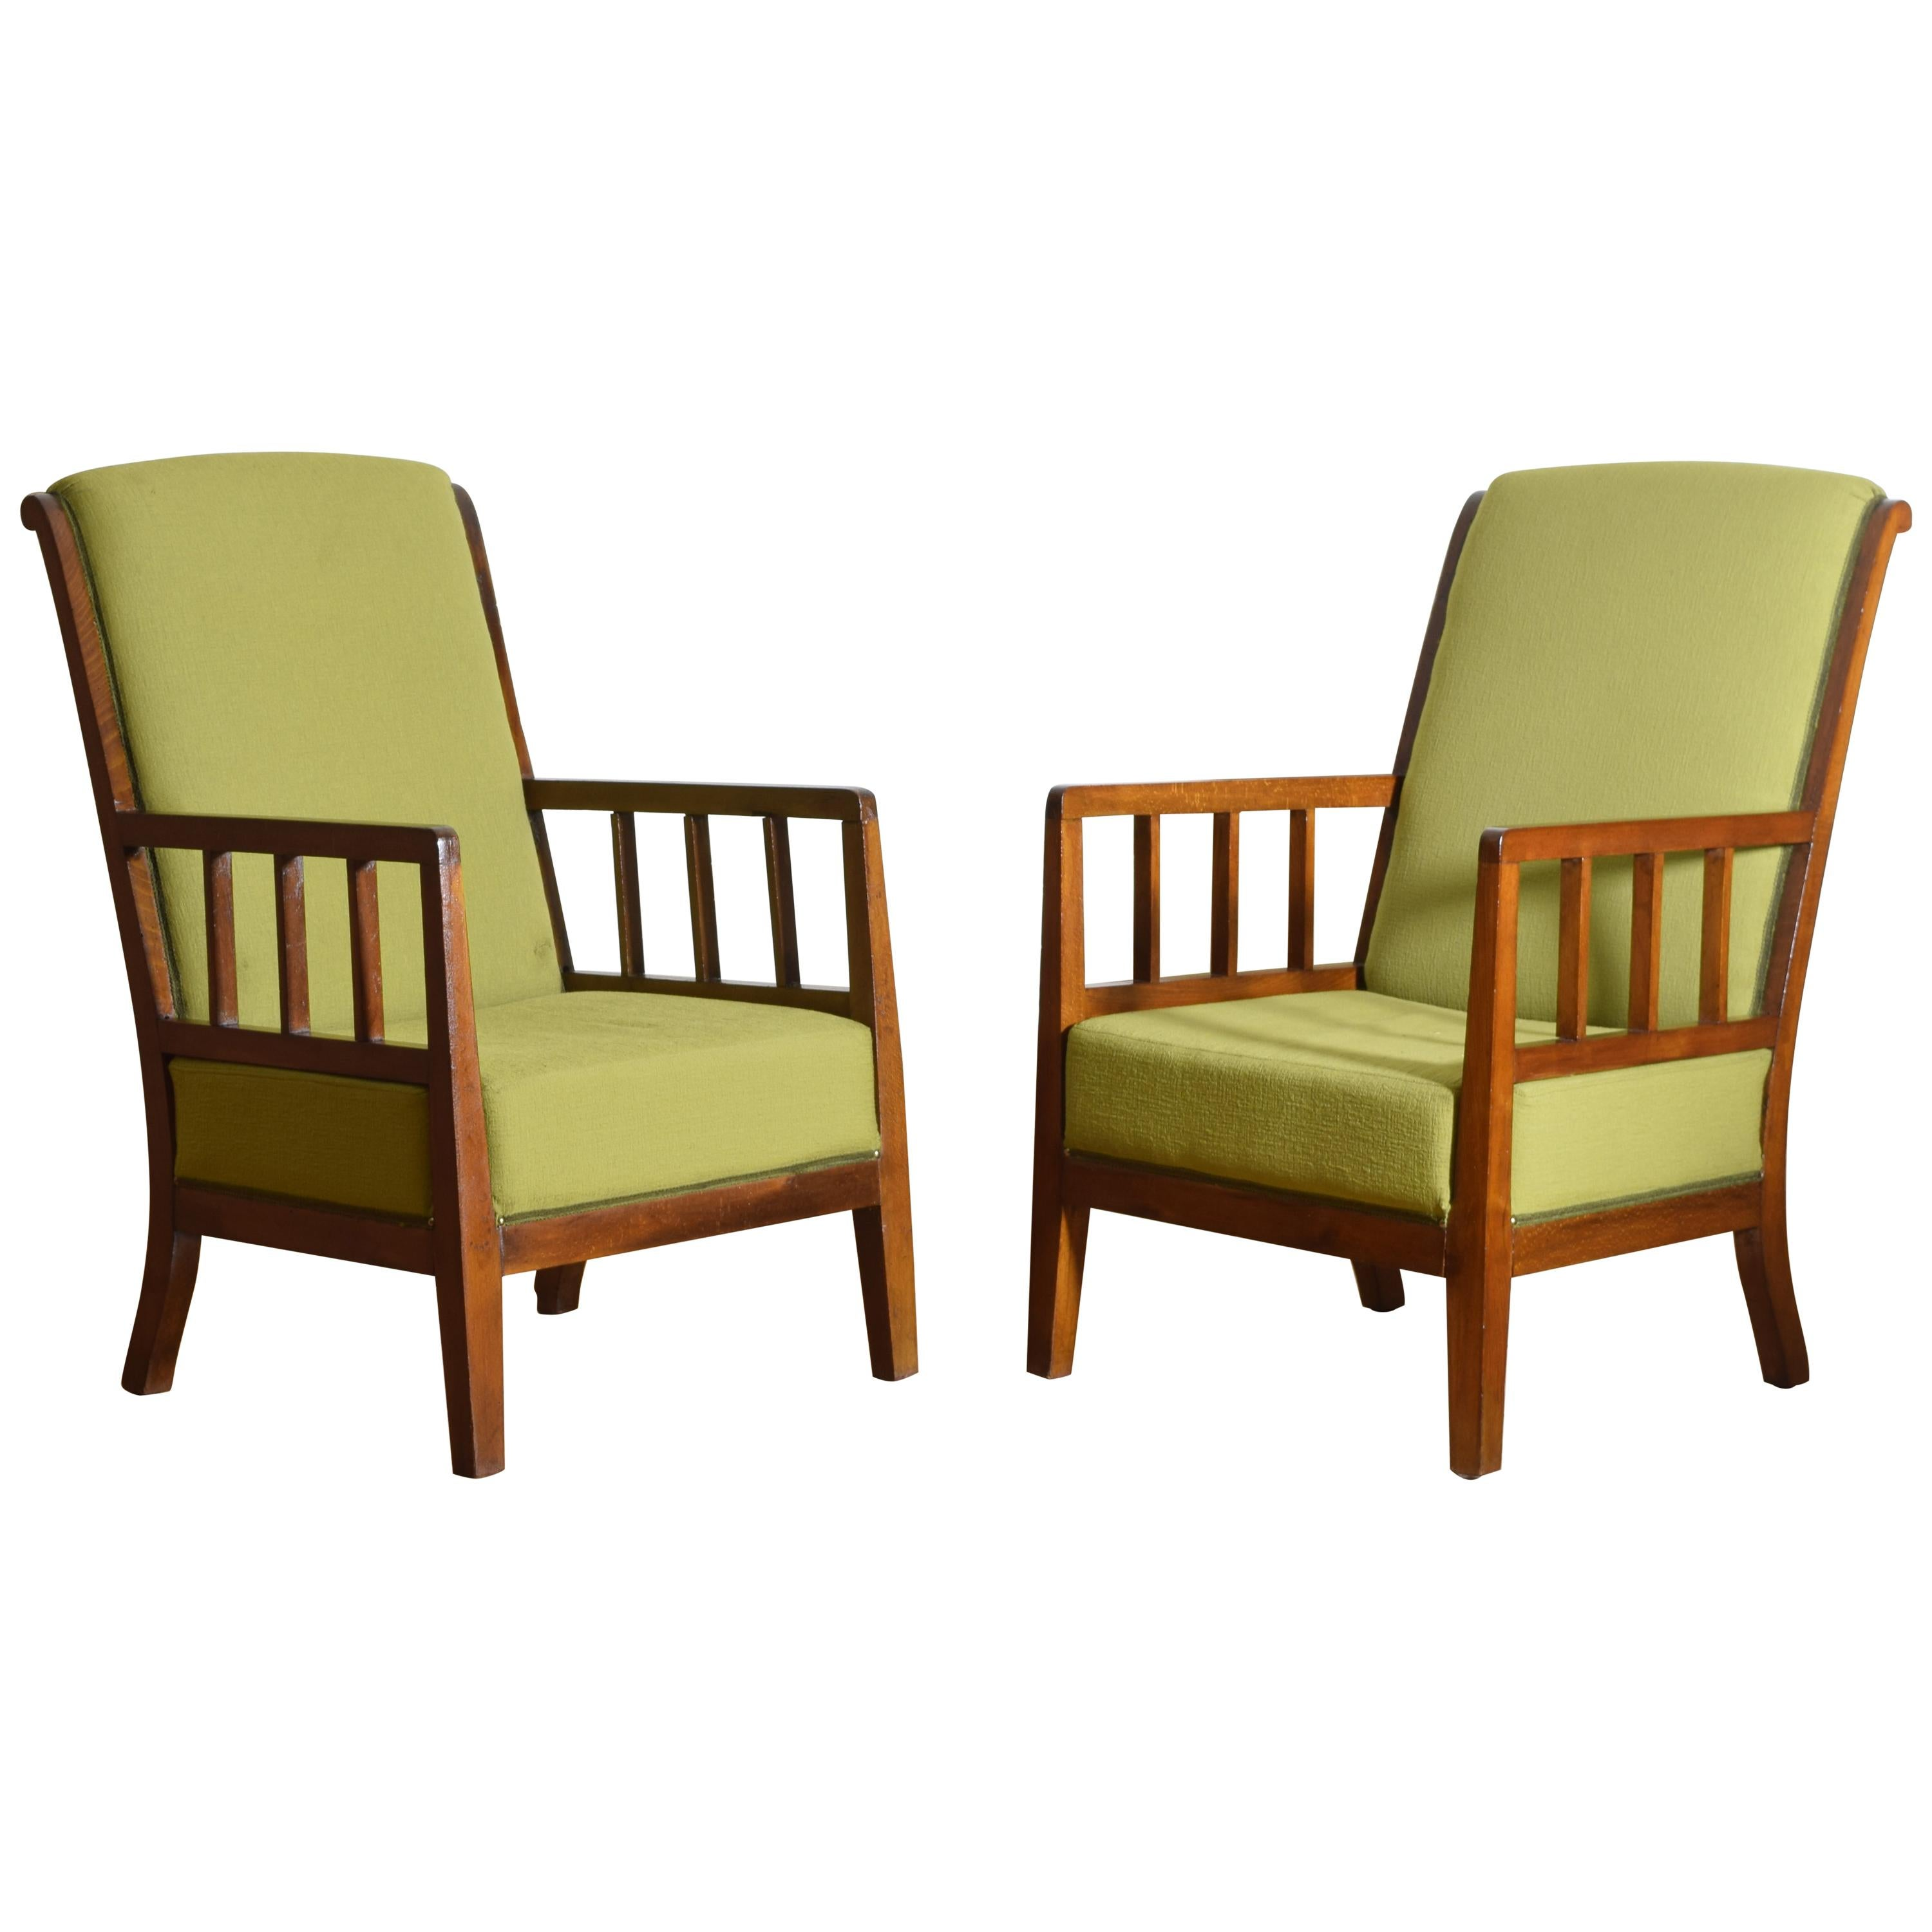 Pair of Italian Midcentury Wooden and Upholstered Armchairs, circa 1950